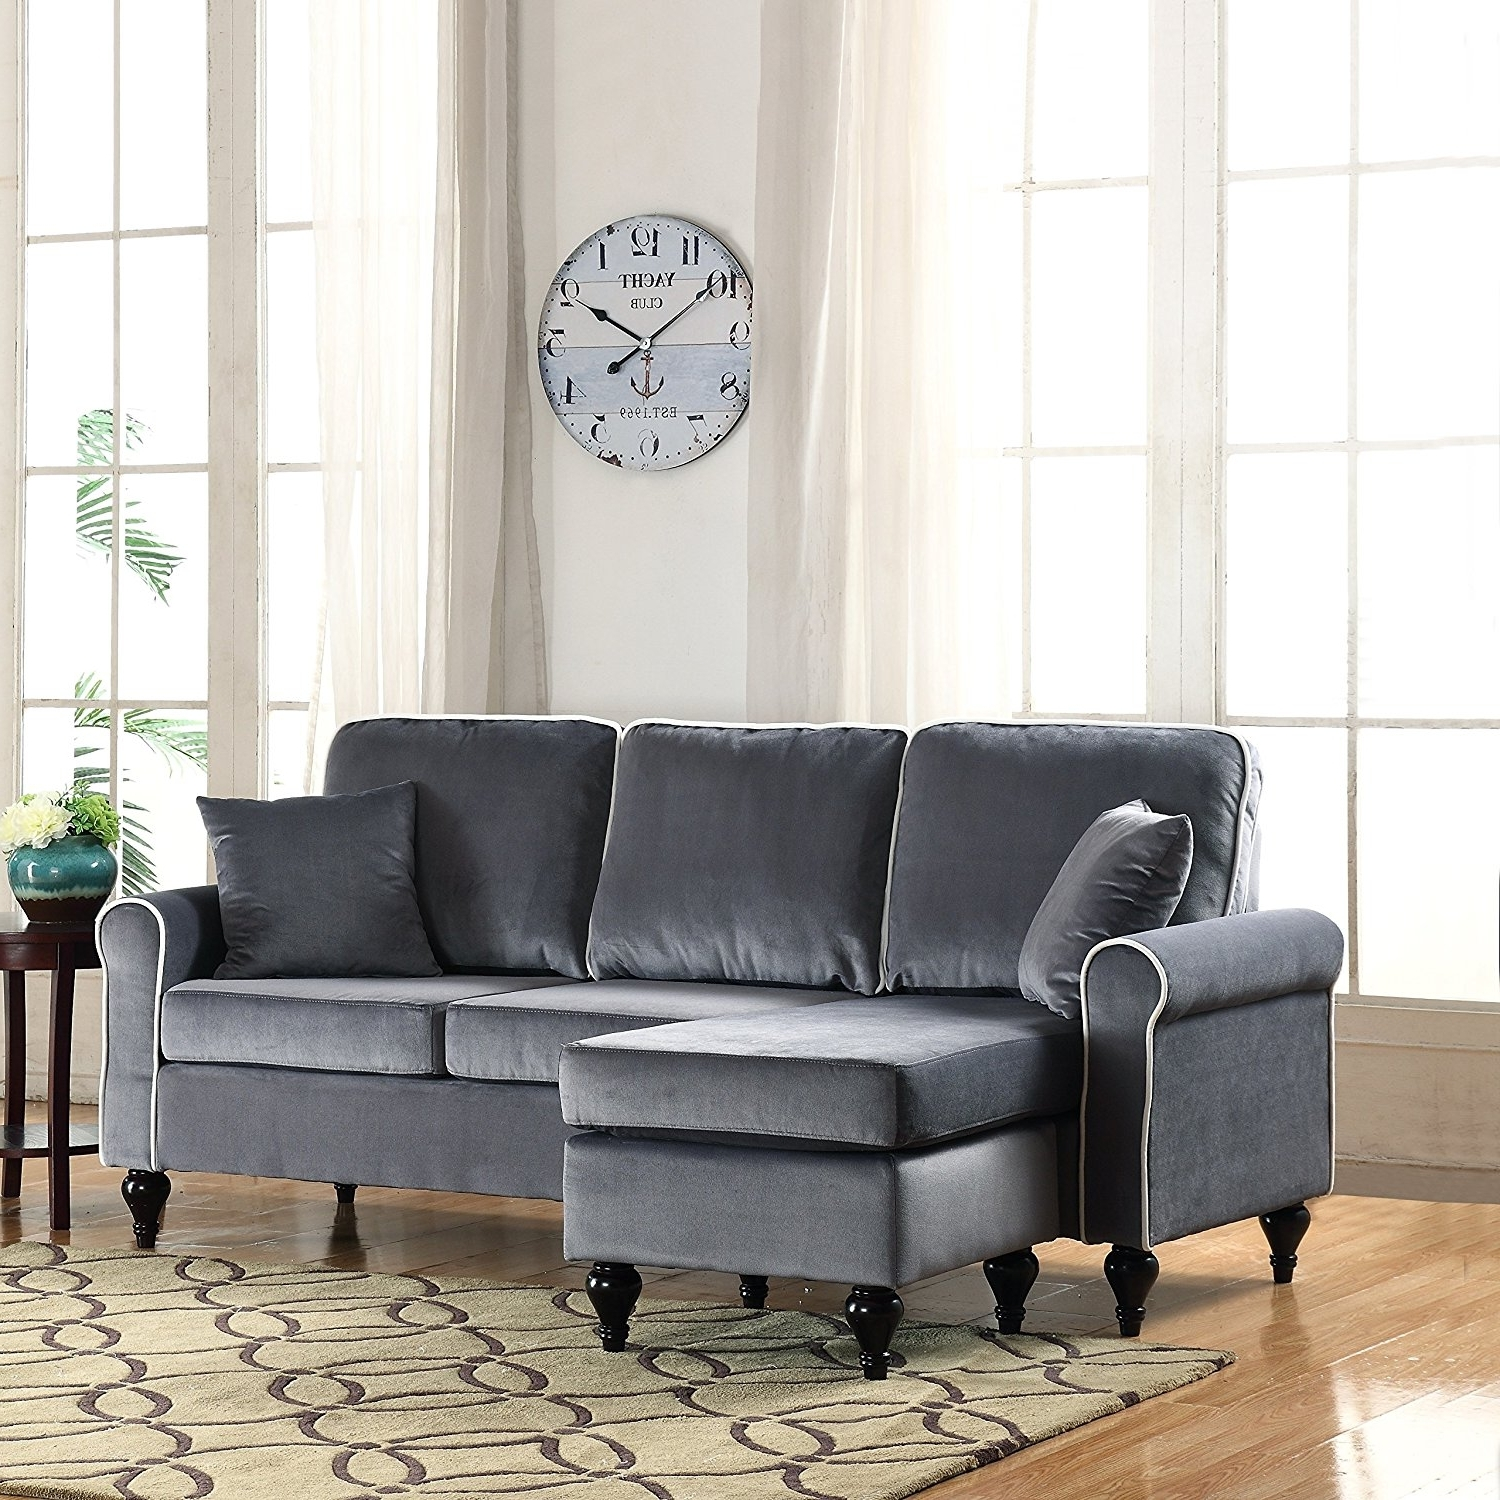 Sofas With Reversible Chaise Lounge Regarding Best And Newest Amazon: Classic And Traditional Small Space Velvet Sectional (View 15 of 15)